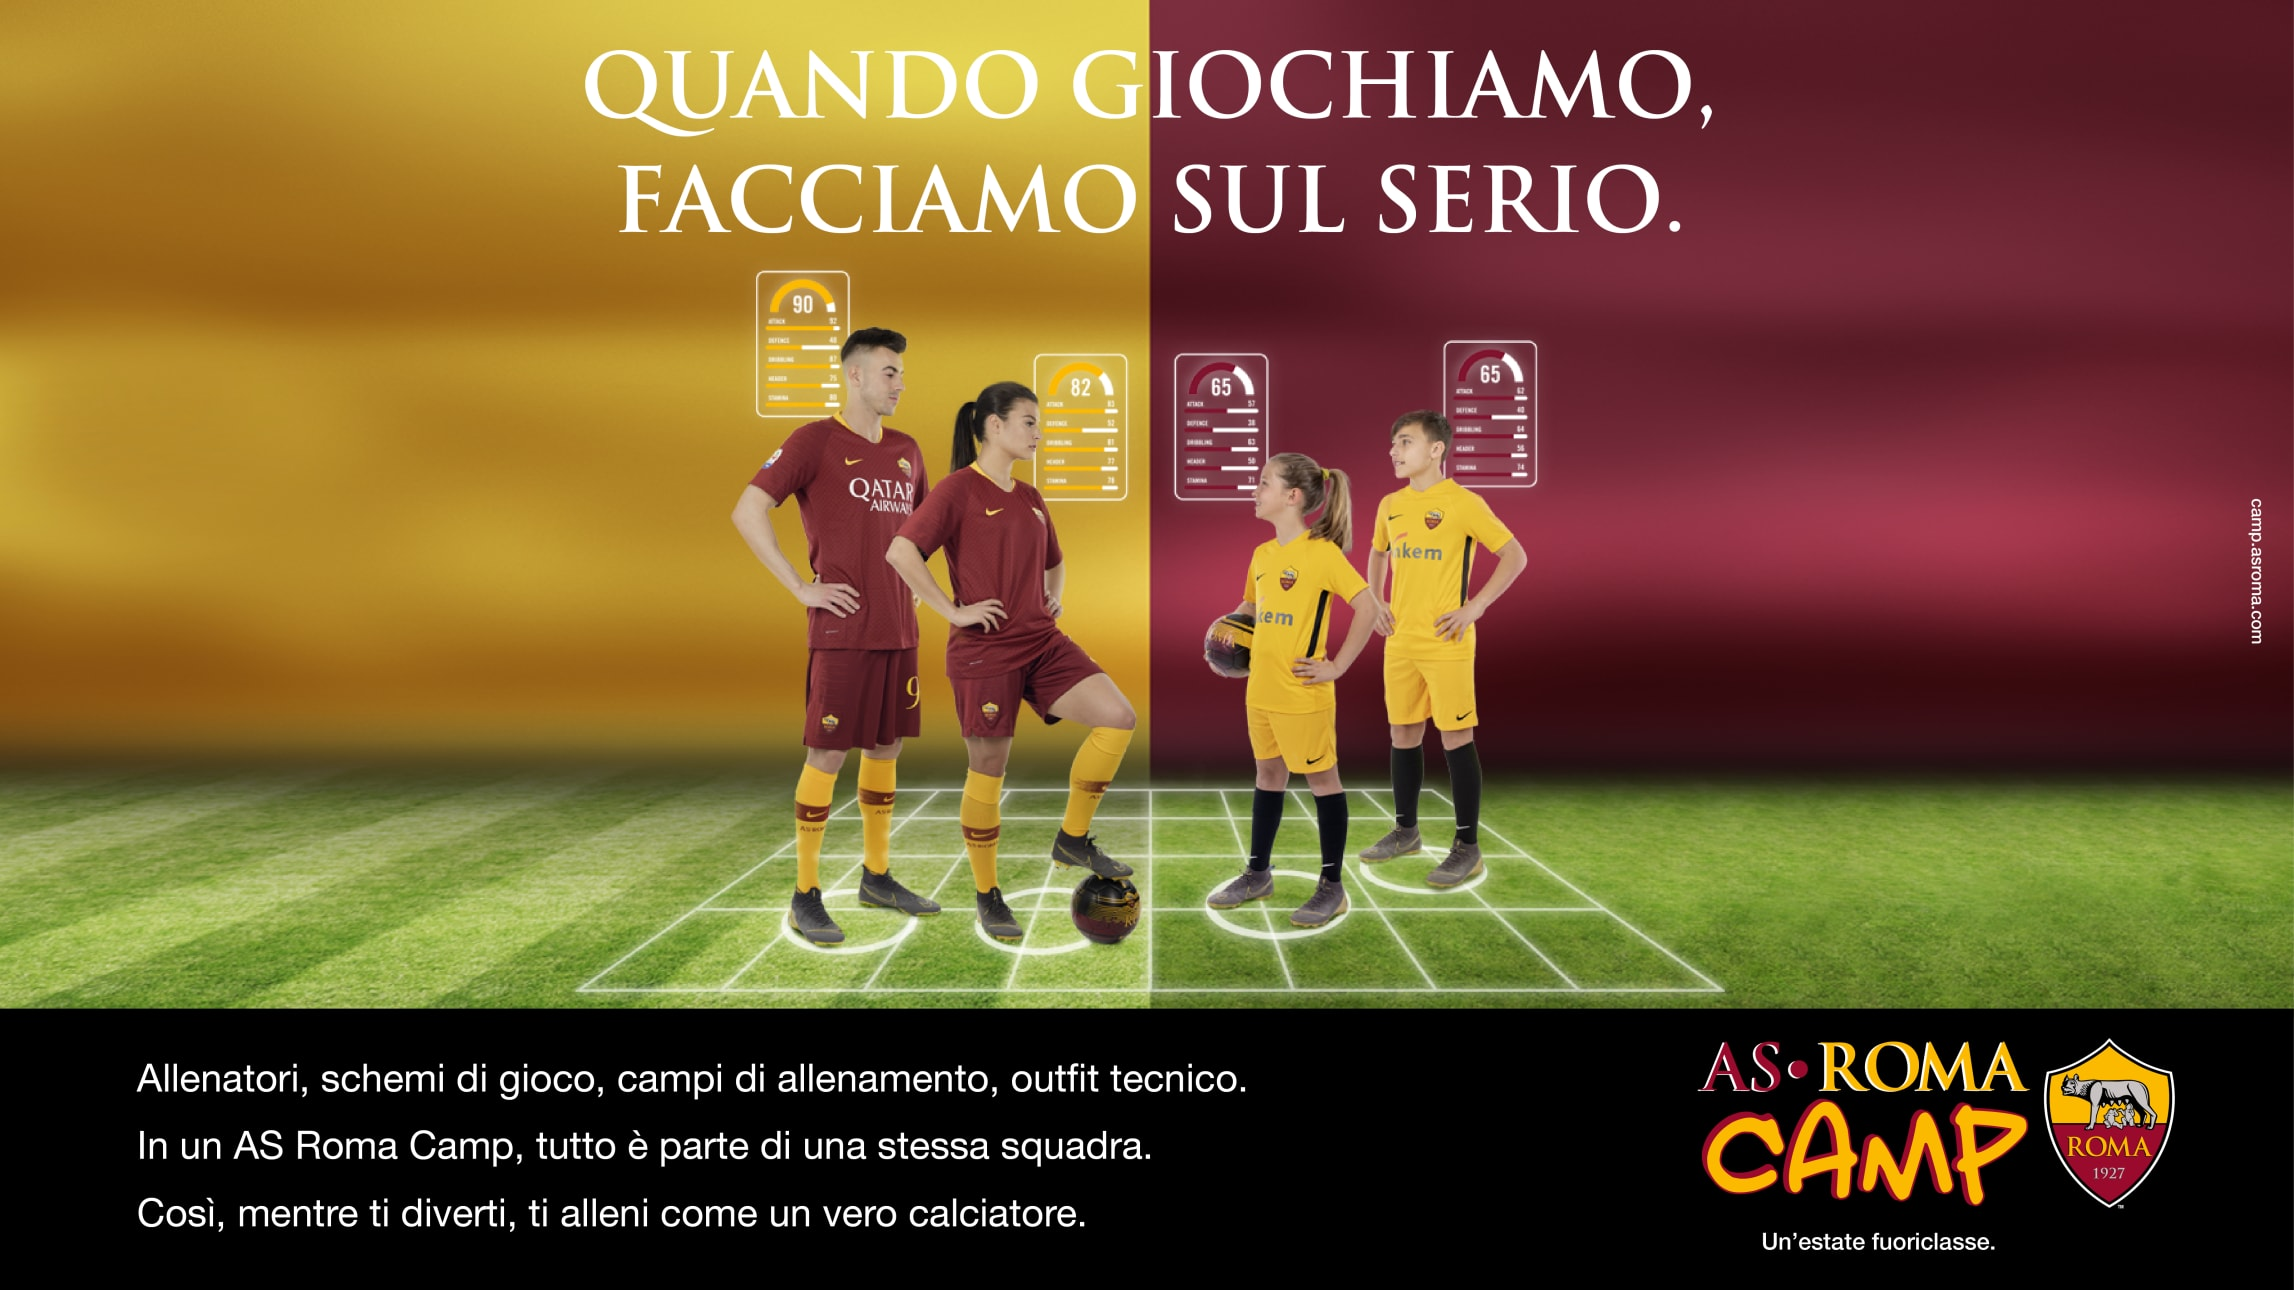 Asroma Calendario.Tornano Gli As Roma Camp